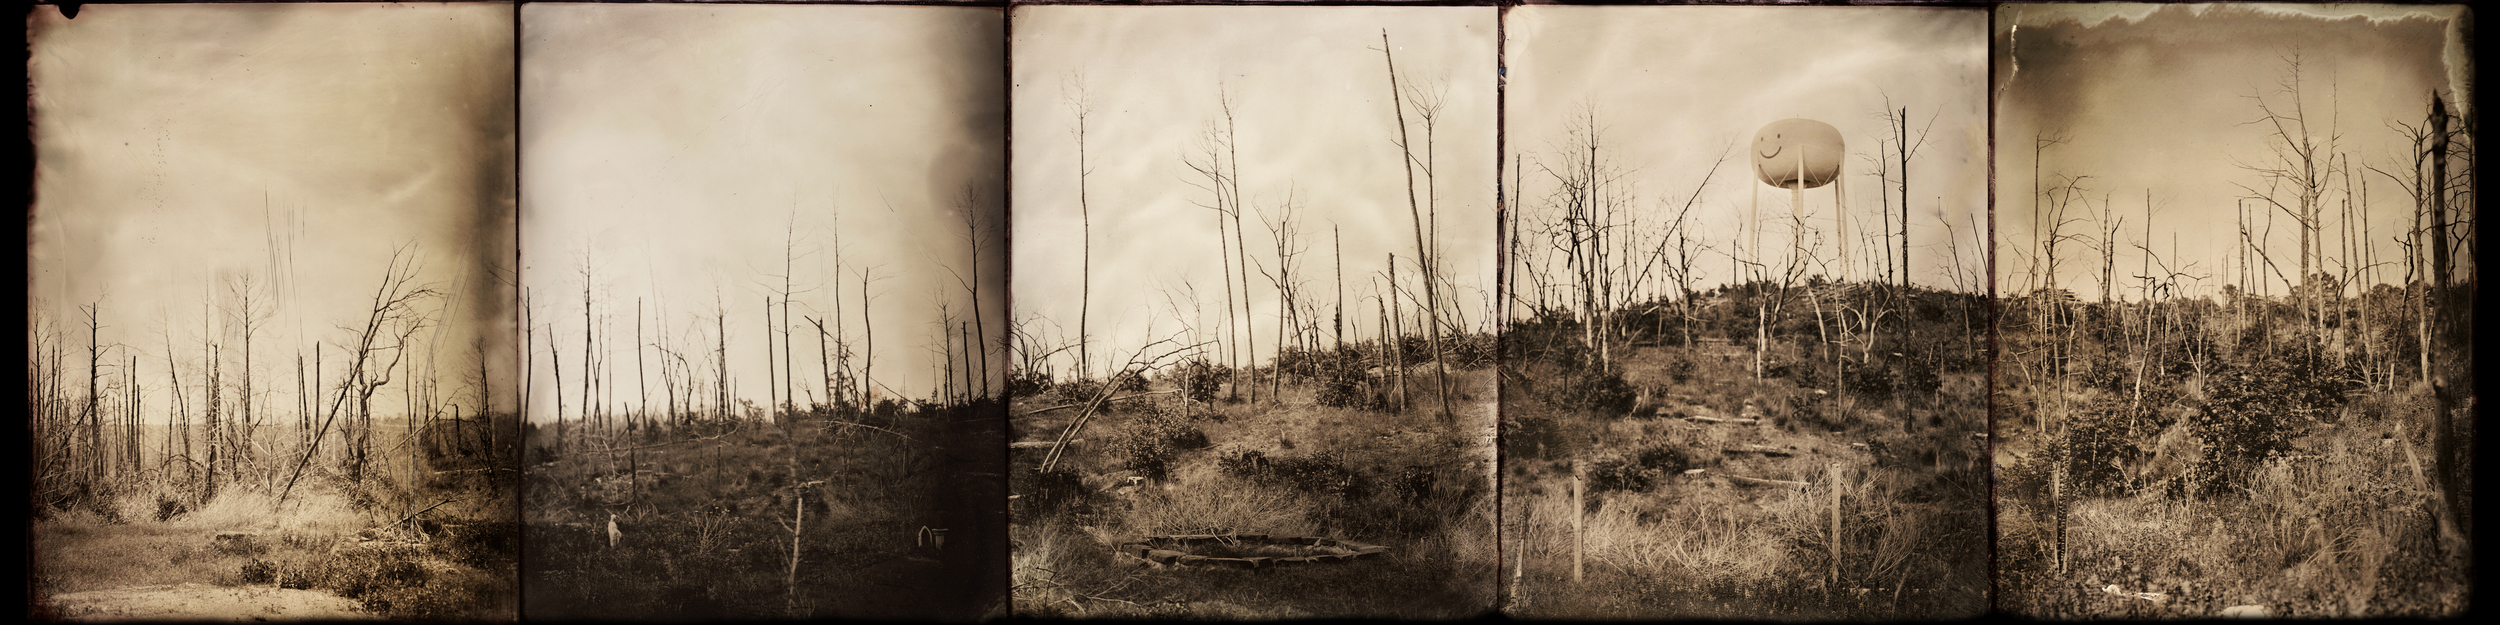 Wildfire ravaged landscape, Bastrop, TX. Image comprised of 4x5 tintypes.